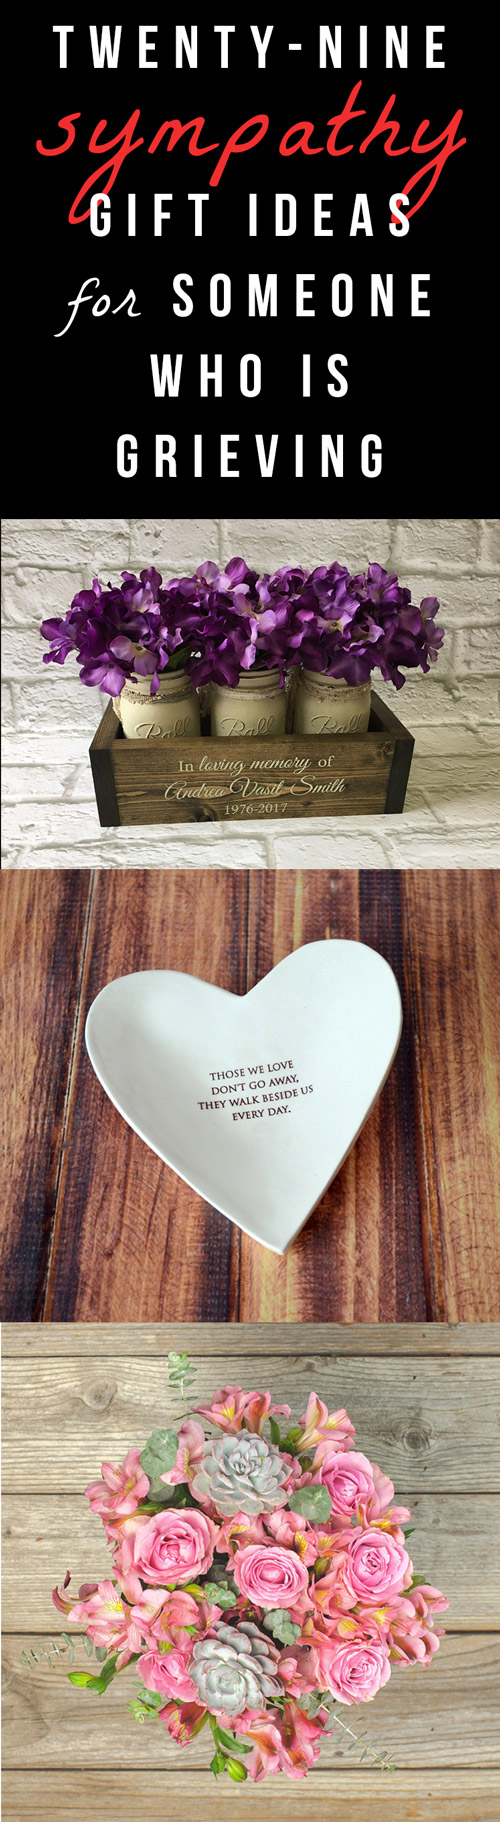 29 sympathy gifts for